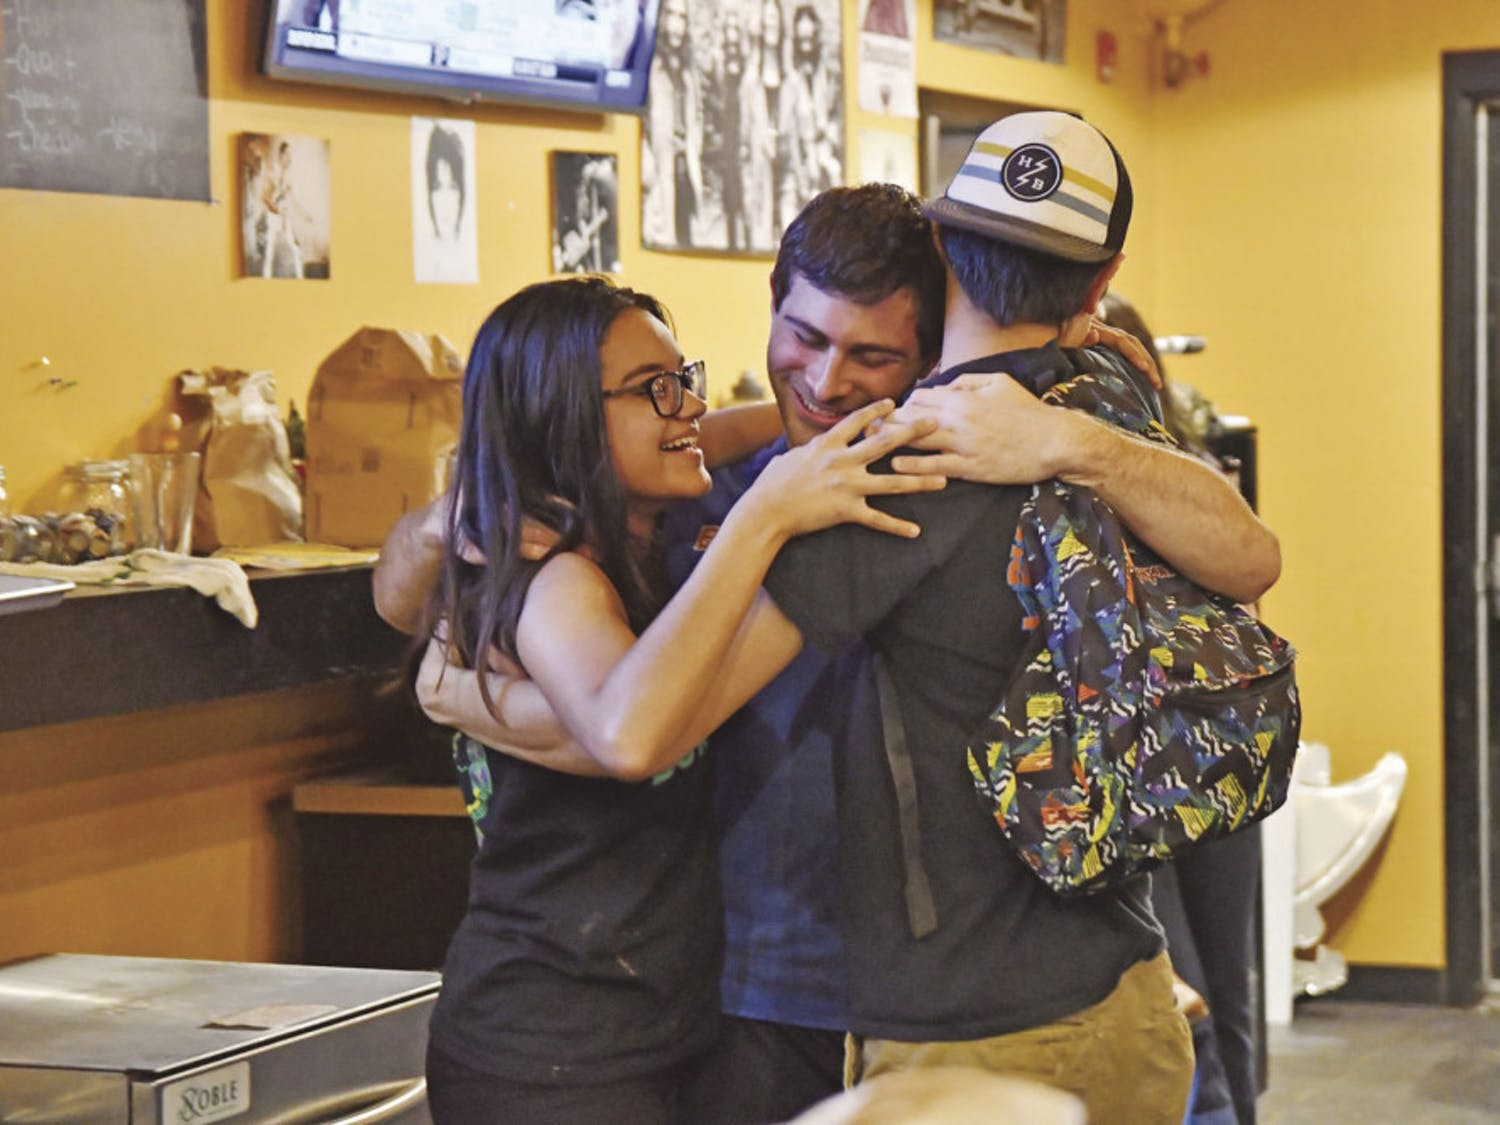 From left: Karla Arboleda, a 20-year-old UF journalism junior, Chase Dryer, a 22-year-old UF telecommunication senior, and William McDavid, a 19-year-old Santa Fe College pre-nursing sophomore, hug on Saturday evening.